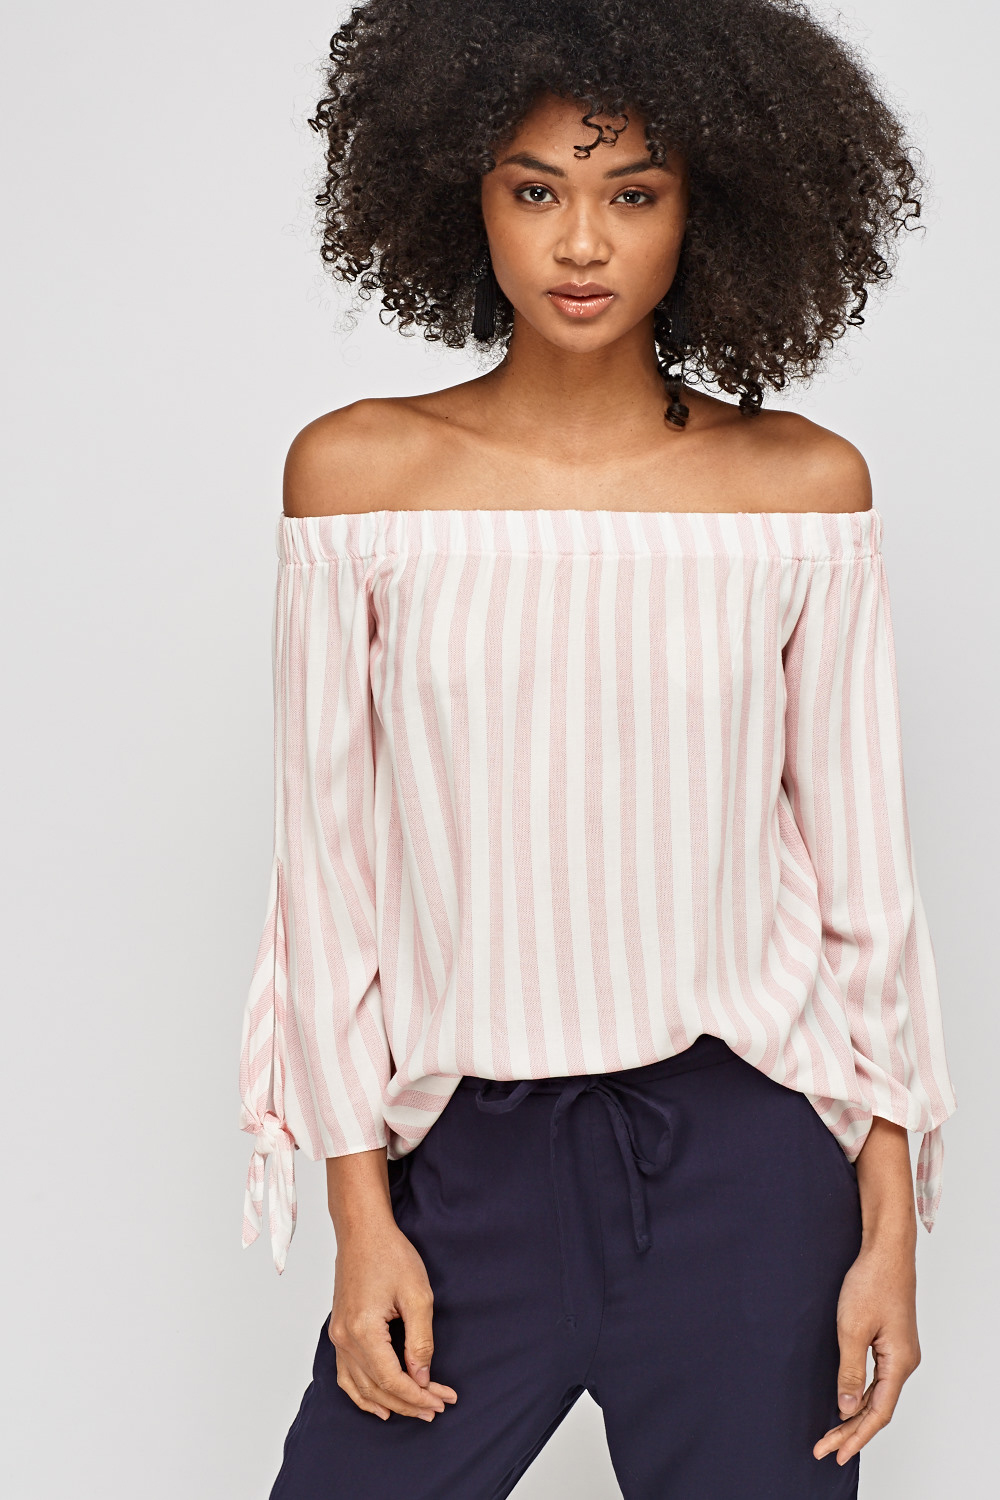 646550ba512e34 Striped Off Shoulder Top - Just £5